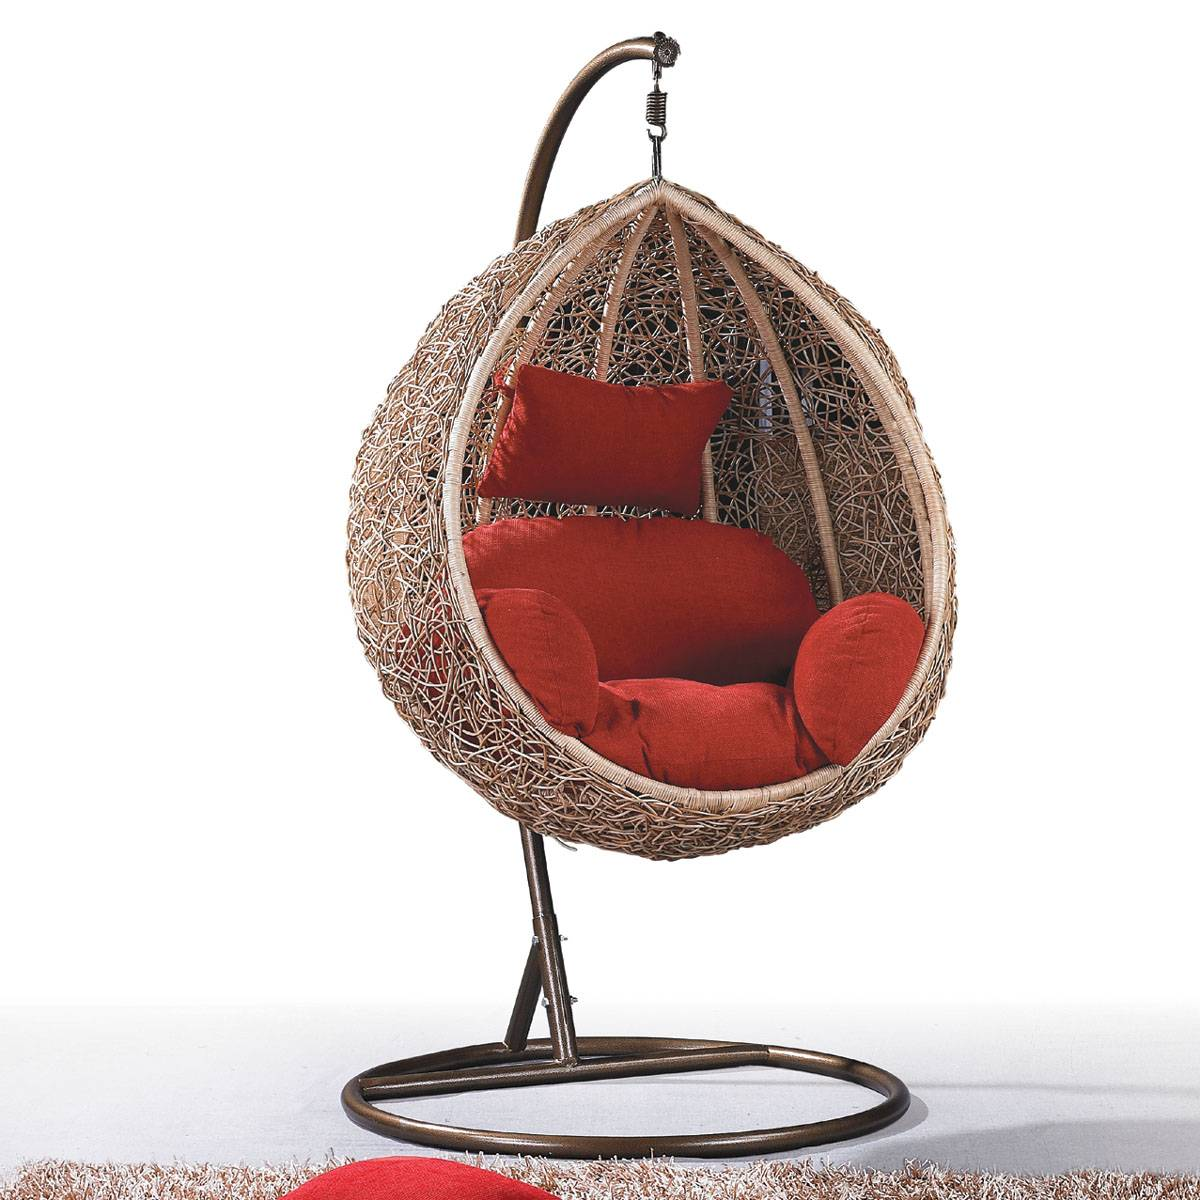 Rattan Swing Chair Egg Chair Outdoor Rattan Wicker Hanging Egg Chair Foshan Nanhai